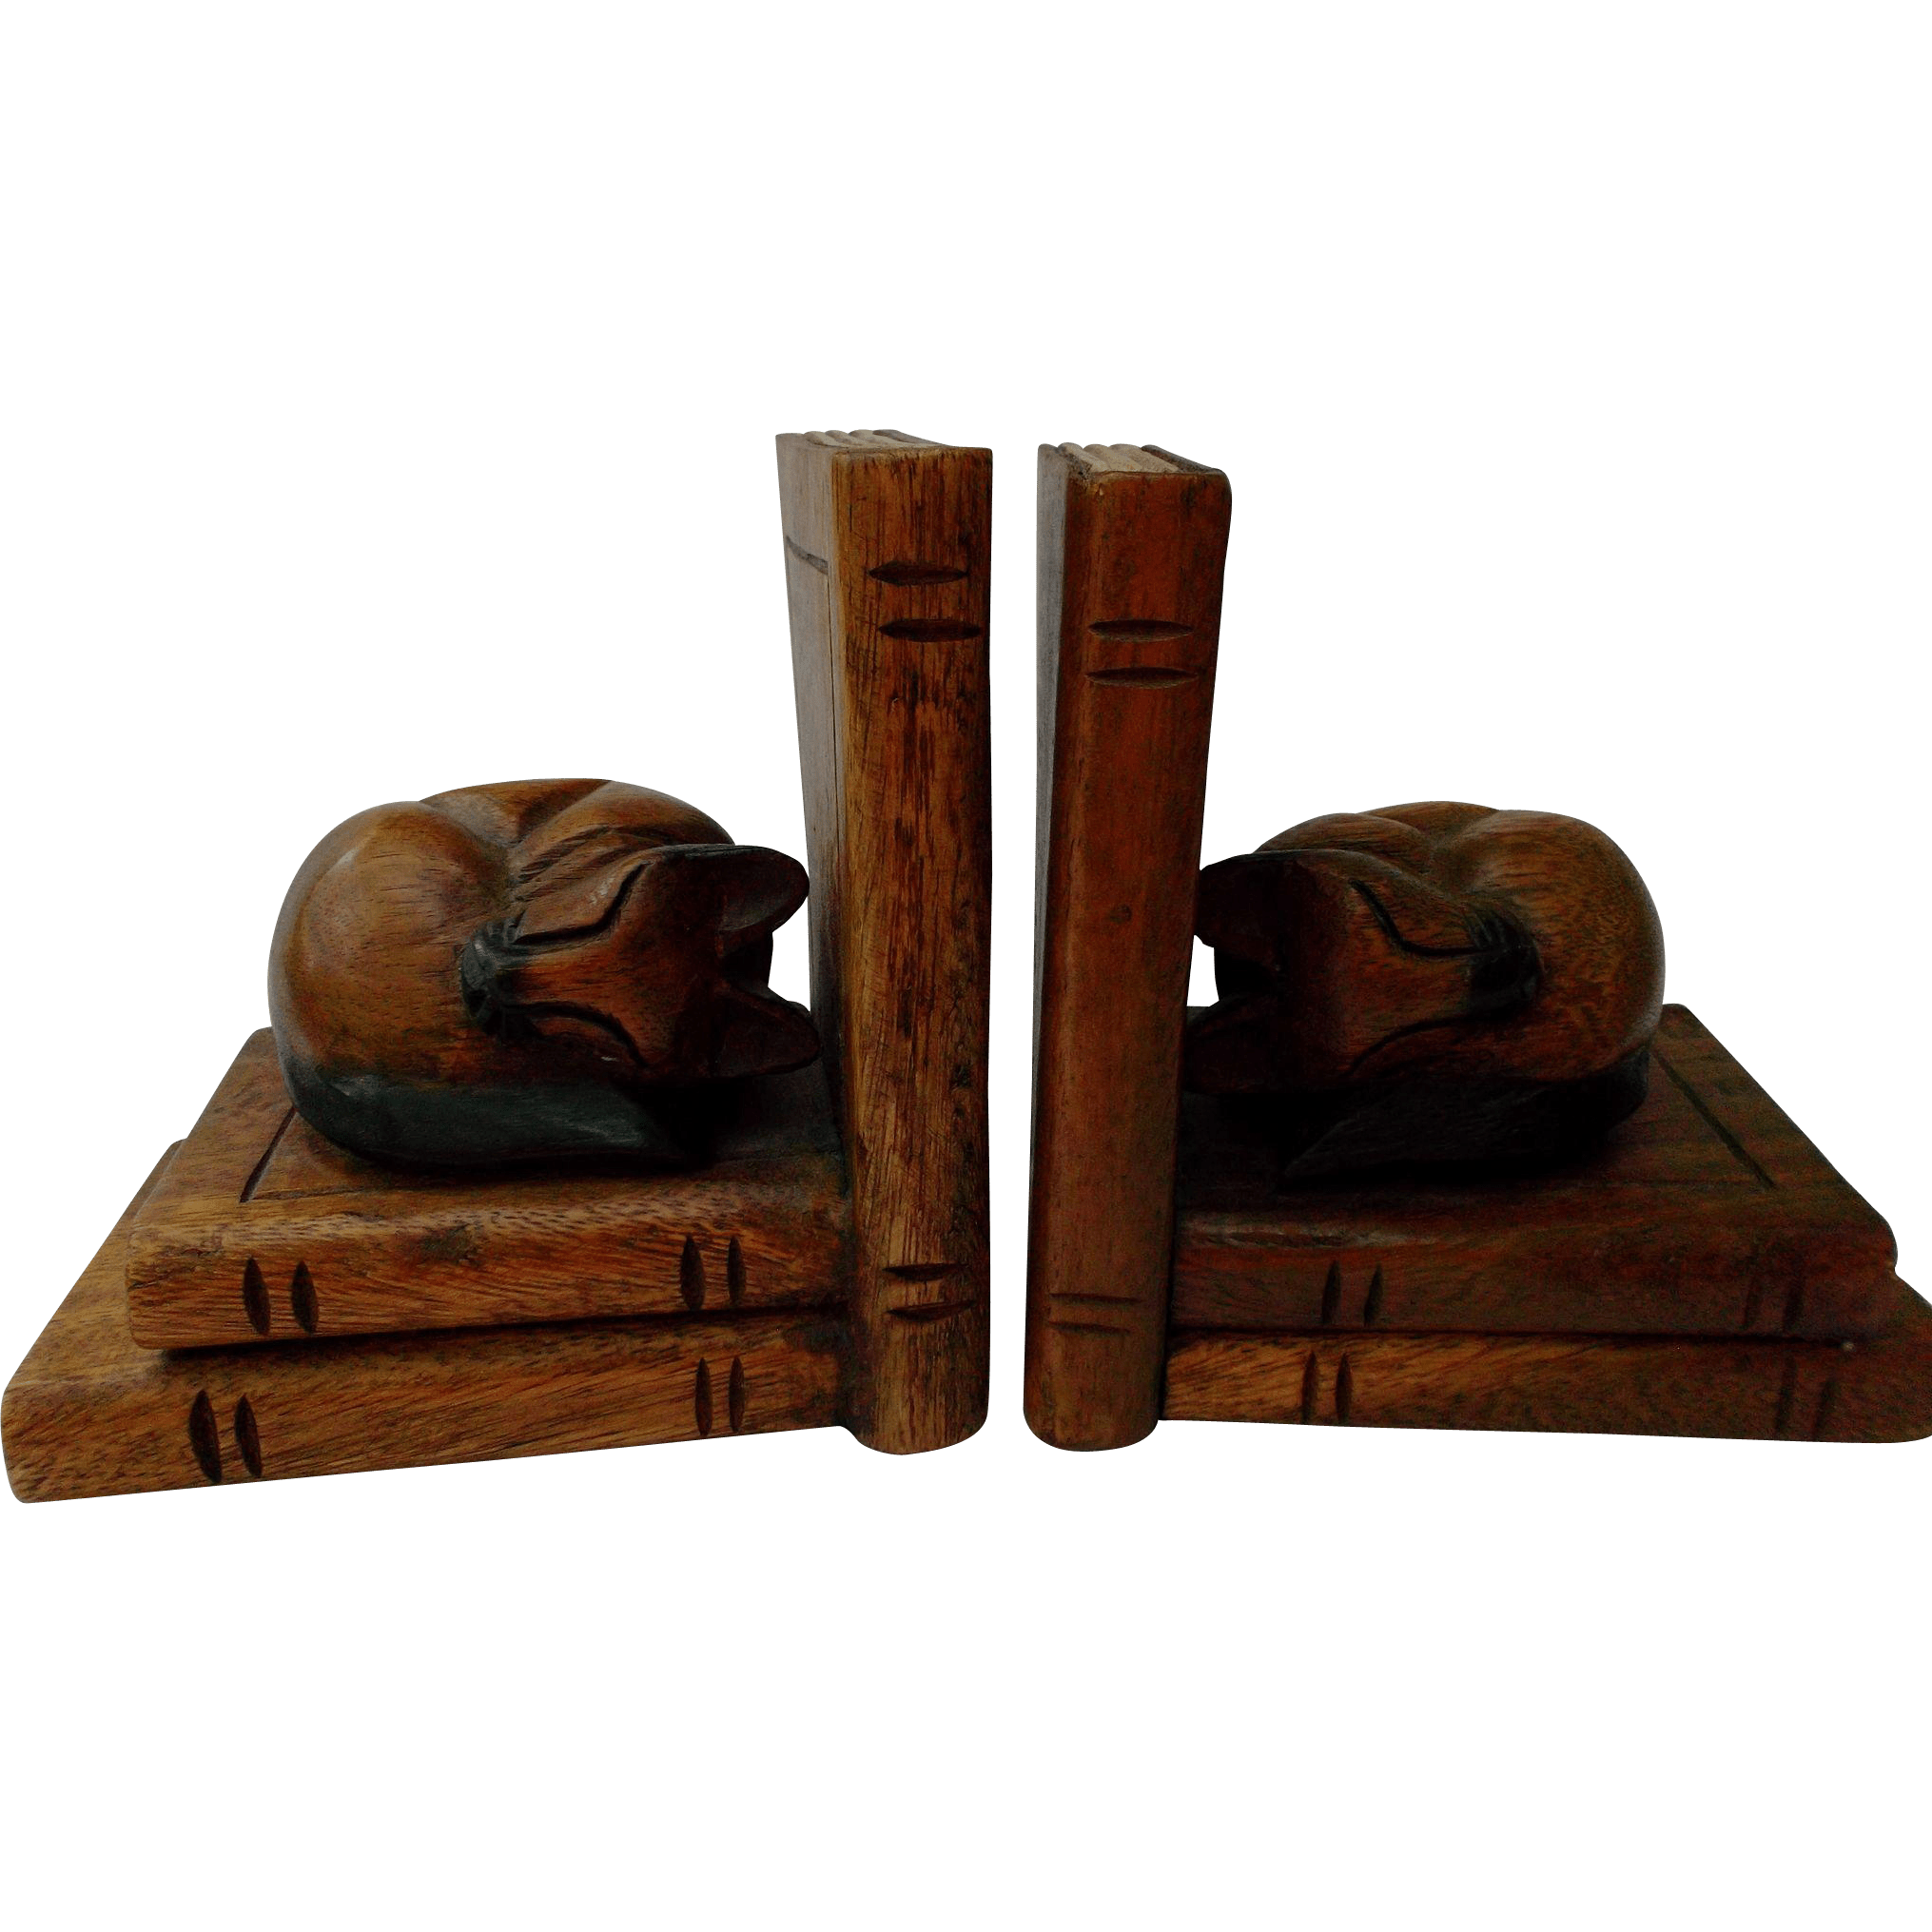 Classic Bookends Carved Wood Cat Bookends Vintage Home Decor From